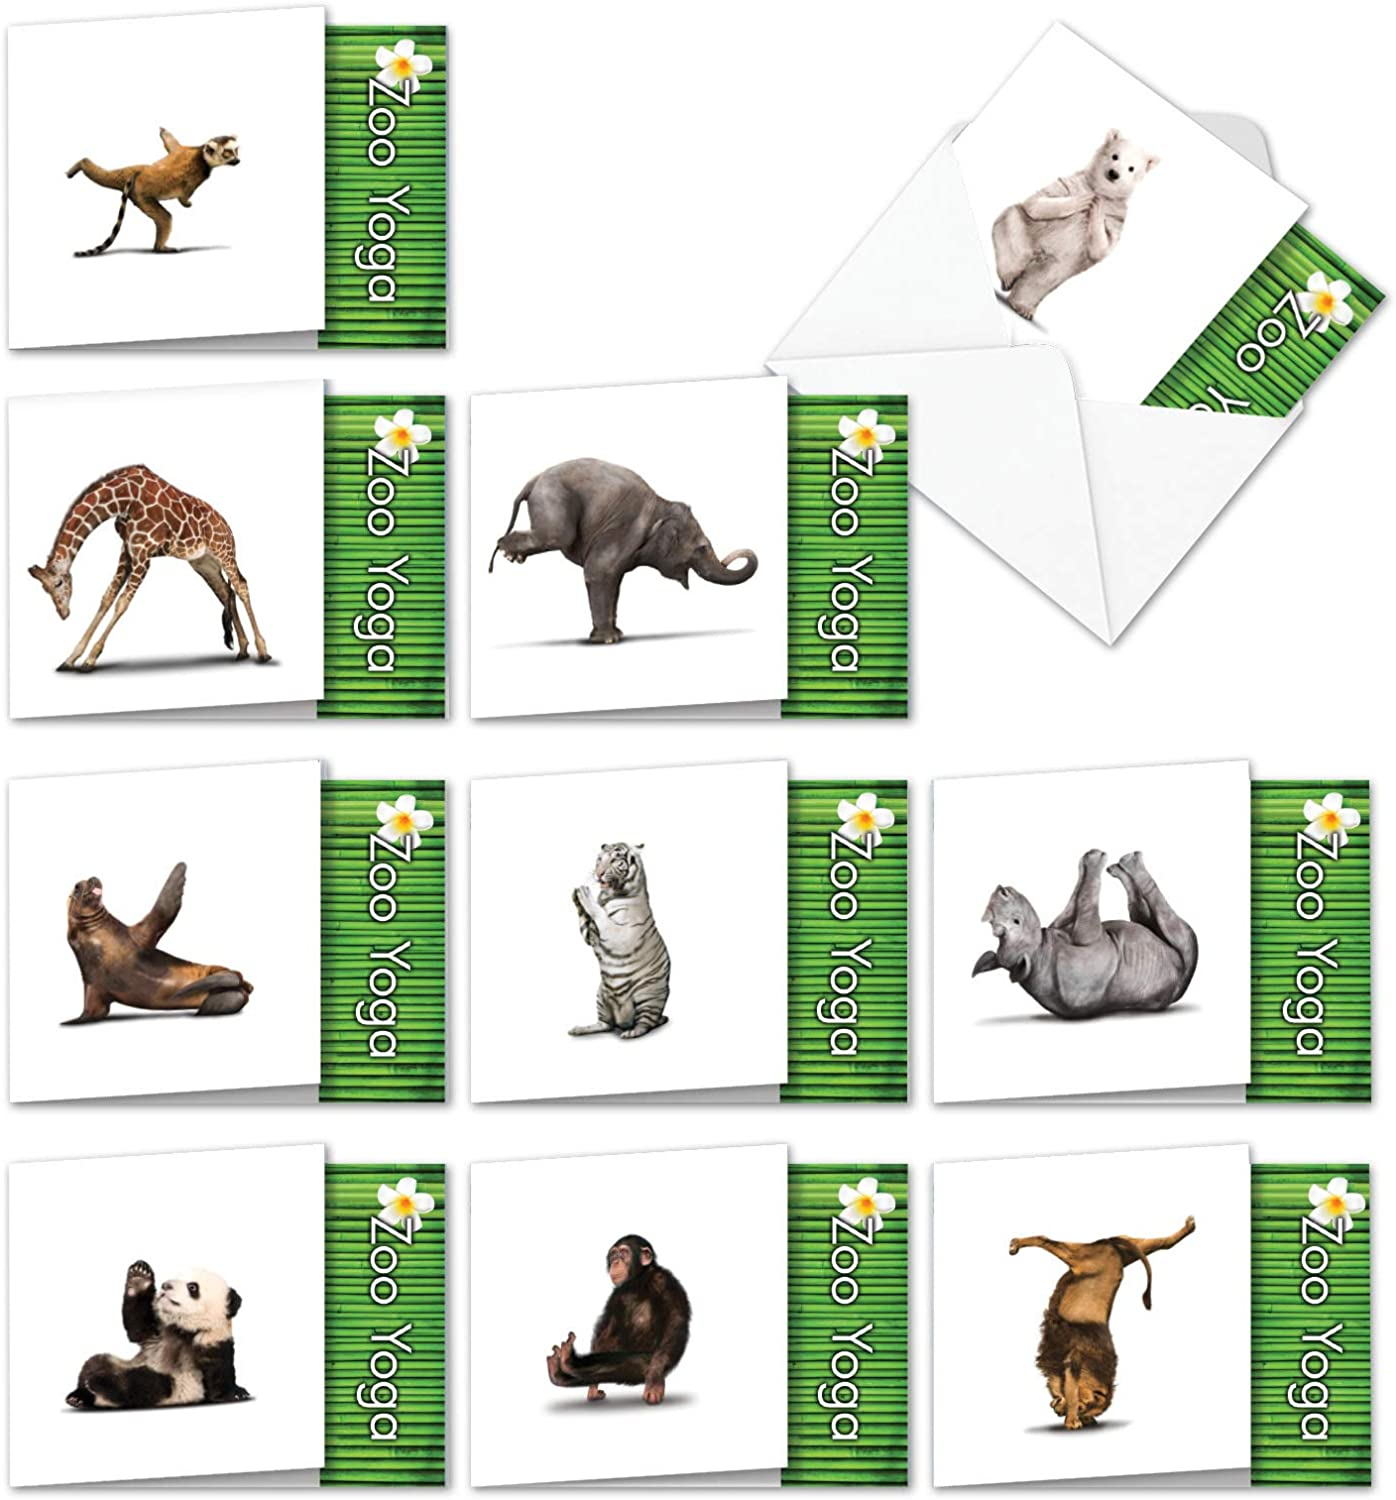 10 Humorous Zoo Yoga All-Occasion Assortment Note Cards w/Envelopes (4.8 x 6.6 Inch) - Blank Greeting Notecards with Funny Zen Bear, Lion, Monkey - ...